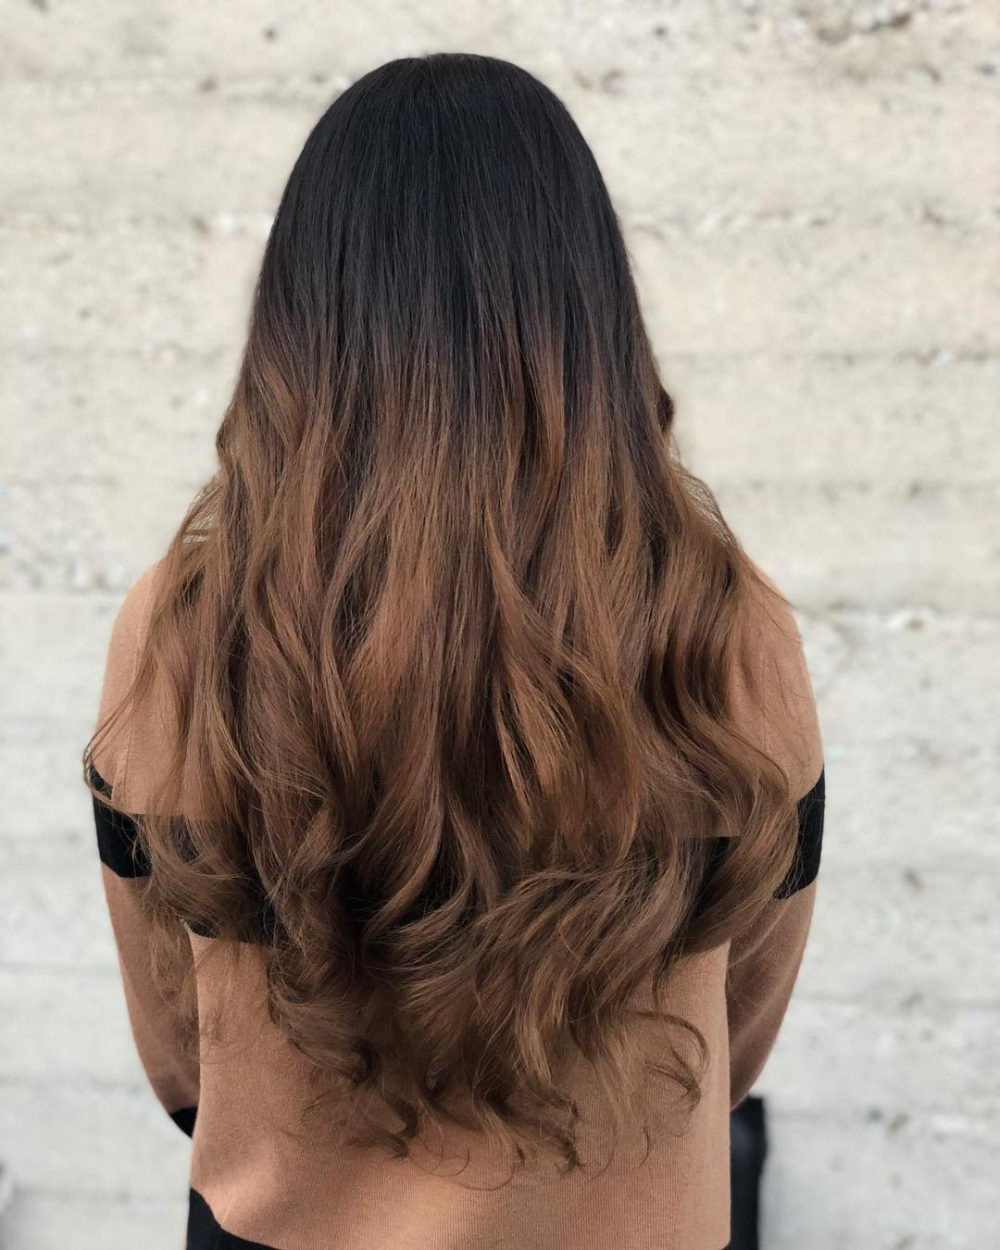 23 Long Ombre Hair Ideas Blowing Up In 2019 Within Well Known Layered Ombre For Long Hairstyles (View 7 of 20)